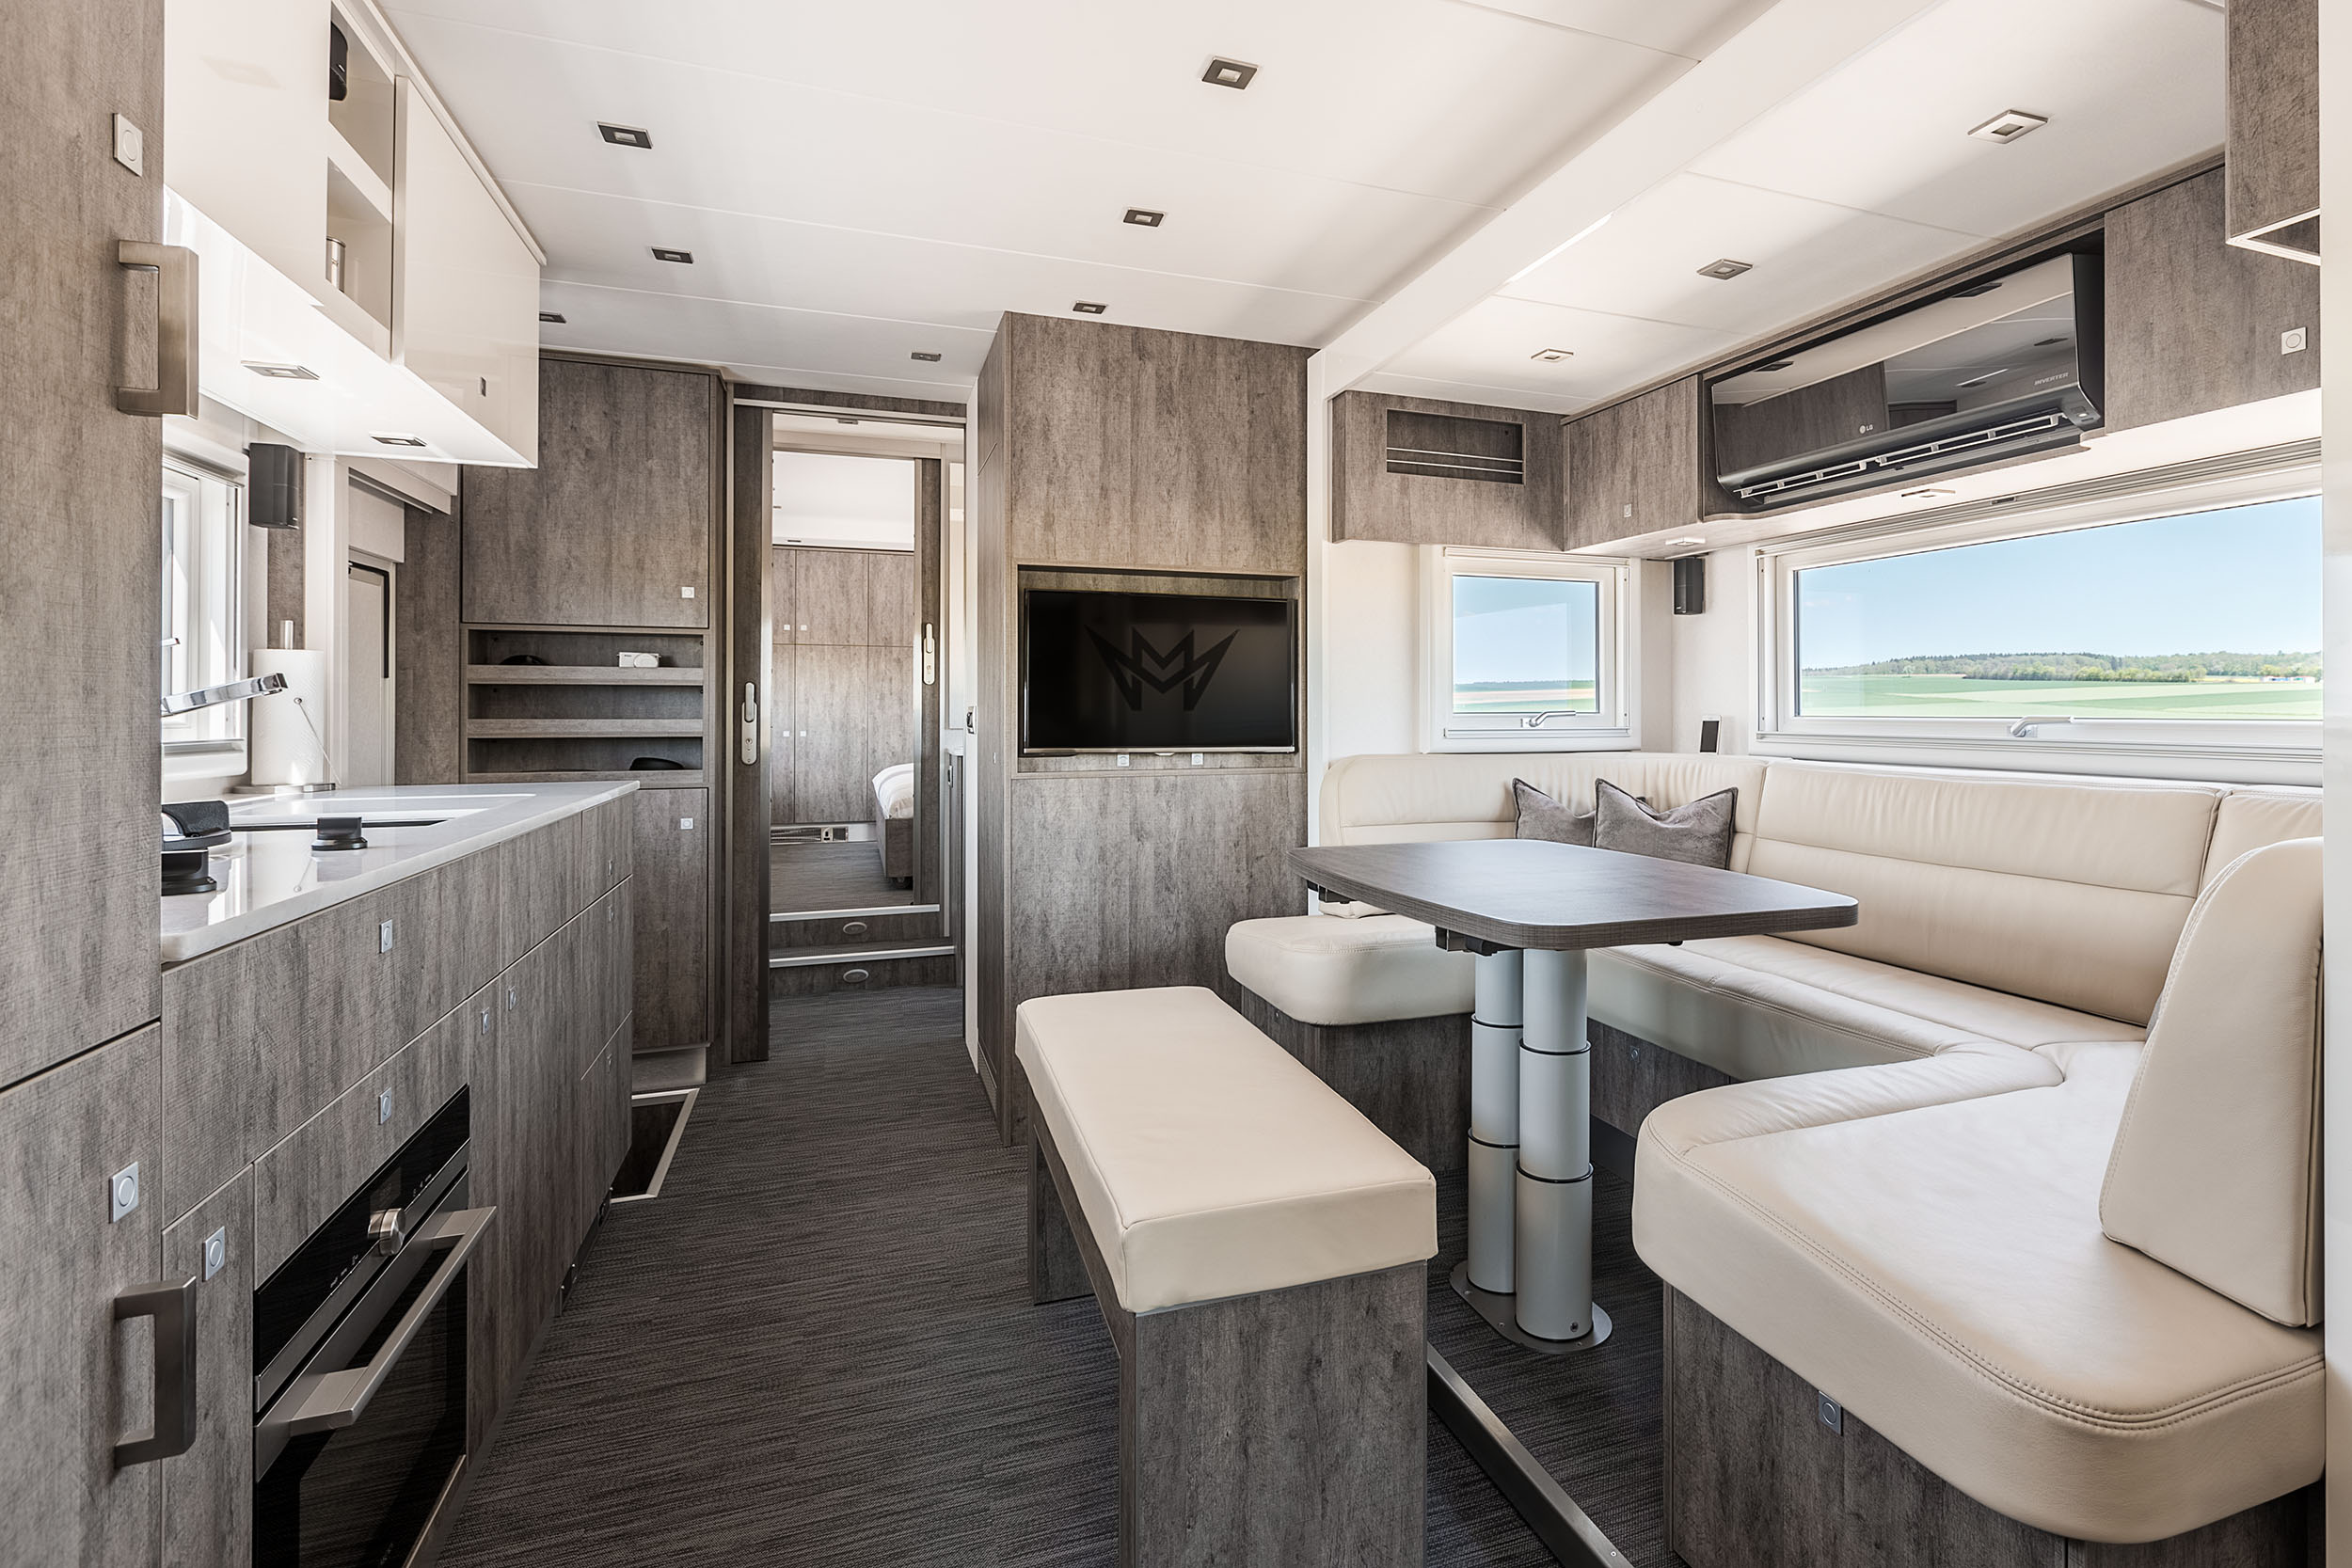 innenraumaufnahmen magellano luxury motorhome wohnmobil hotel. Black Bedroom Furniture Sets. Home Design Ideas